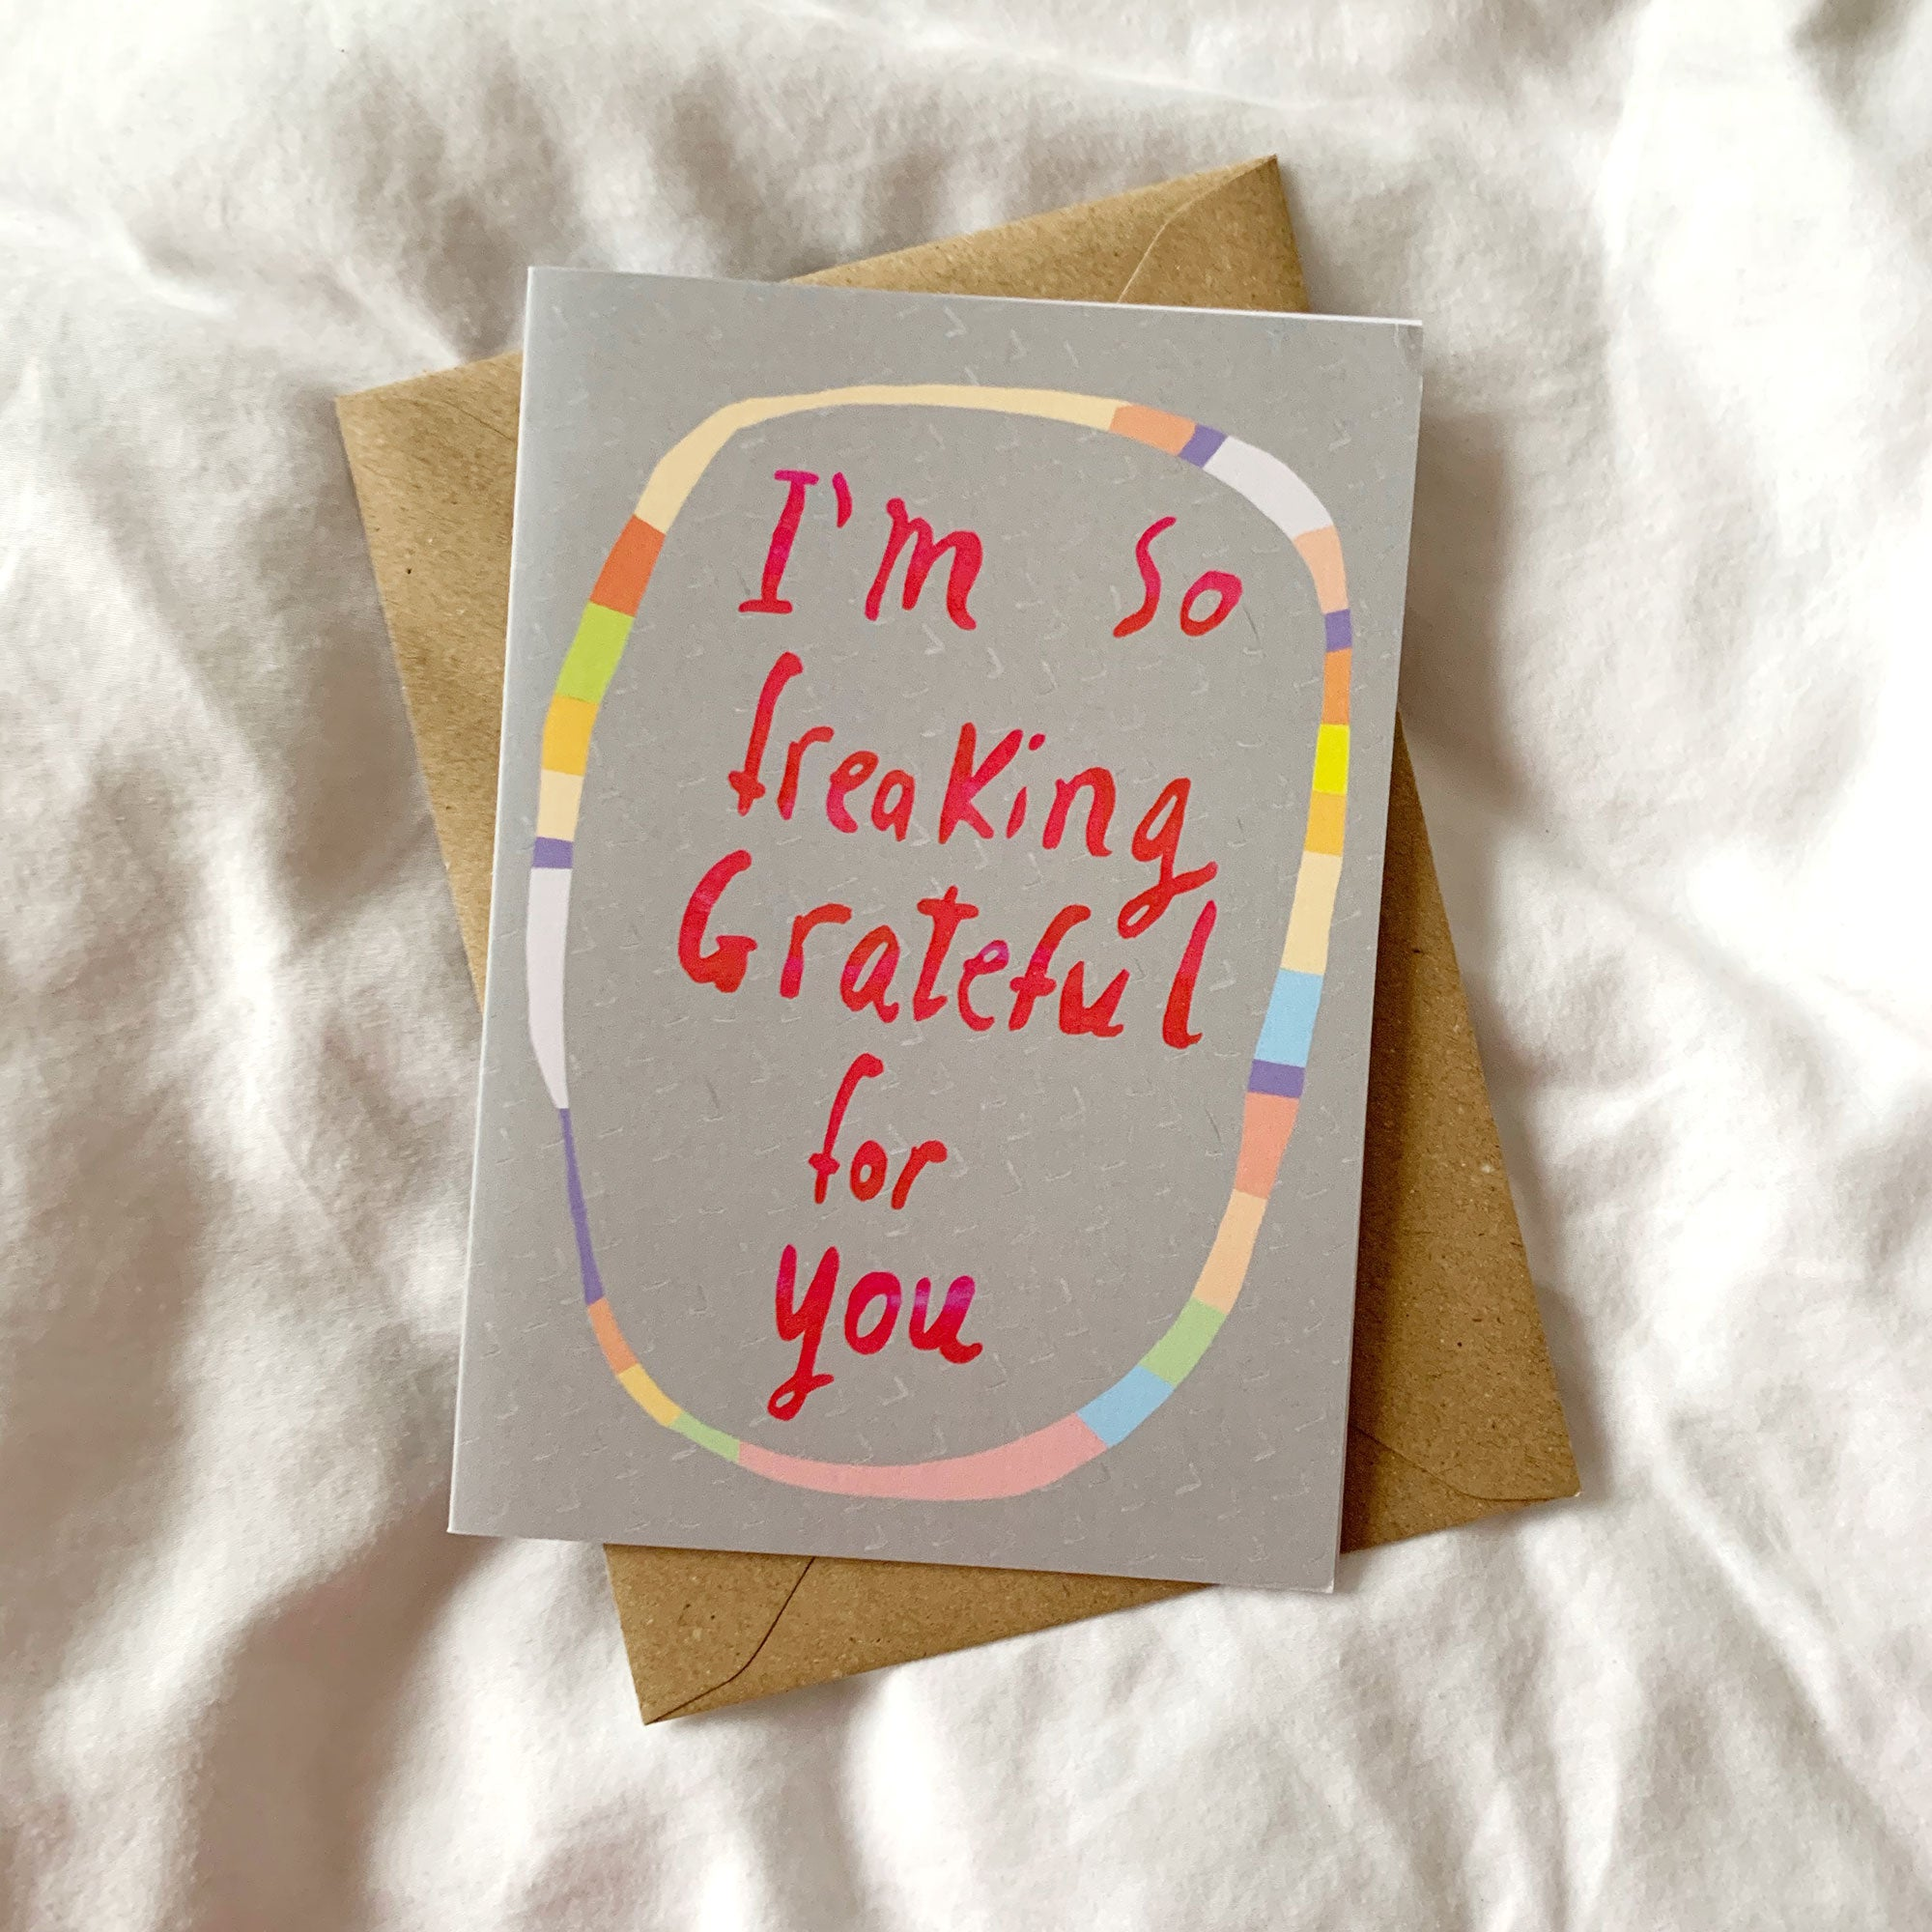 So Grateful card